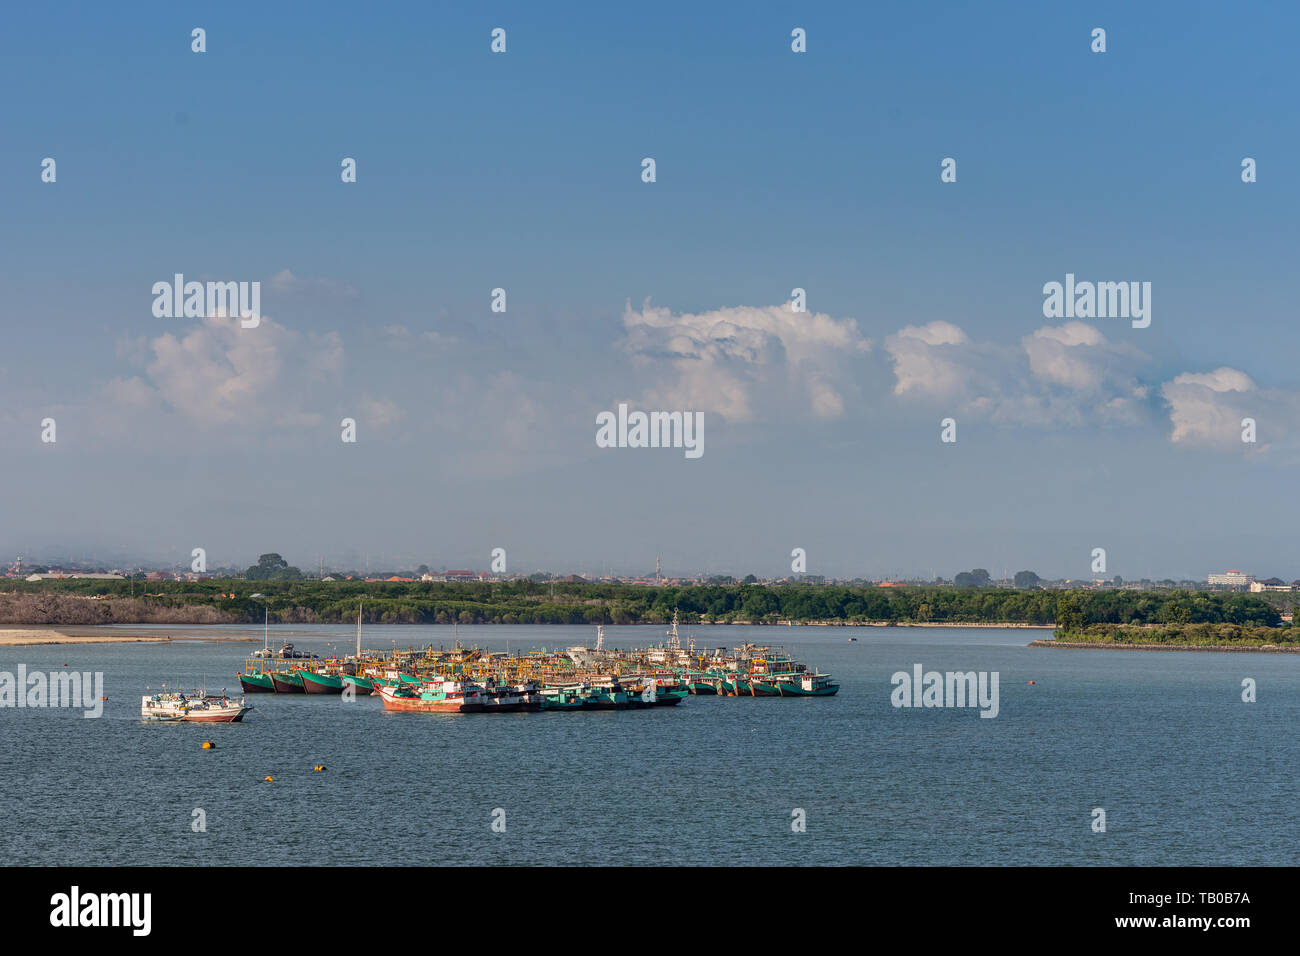 Benoa harbour, Bali, Indonesia - February 26, 2019: cluster of green and red fishing vessels anchored in middle of the port under evening light. Darke - Stock Image